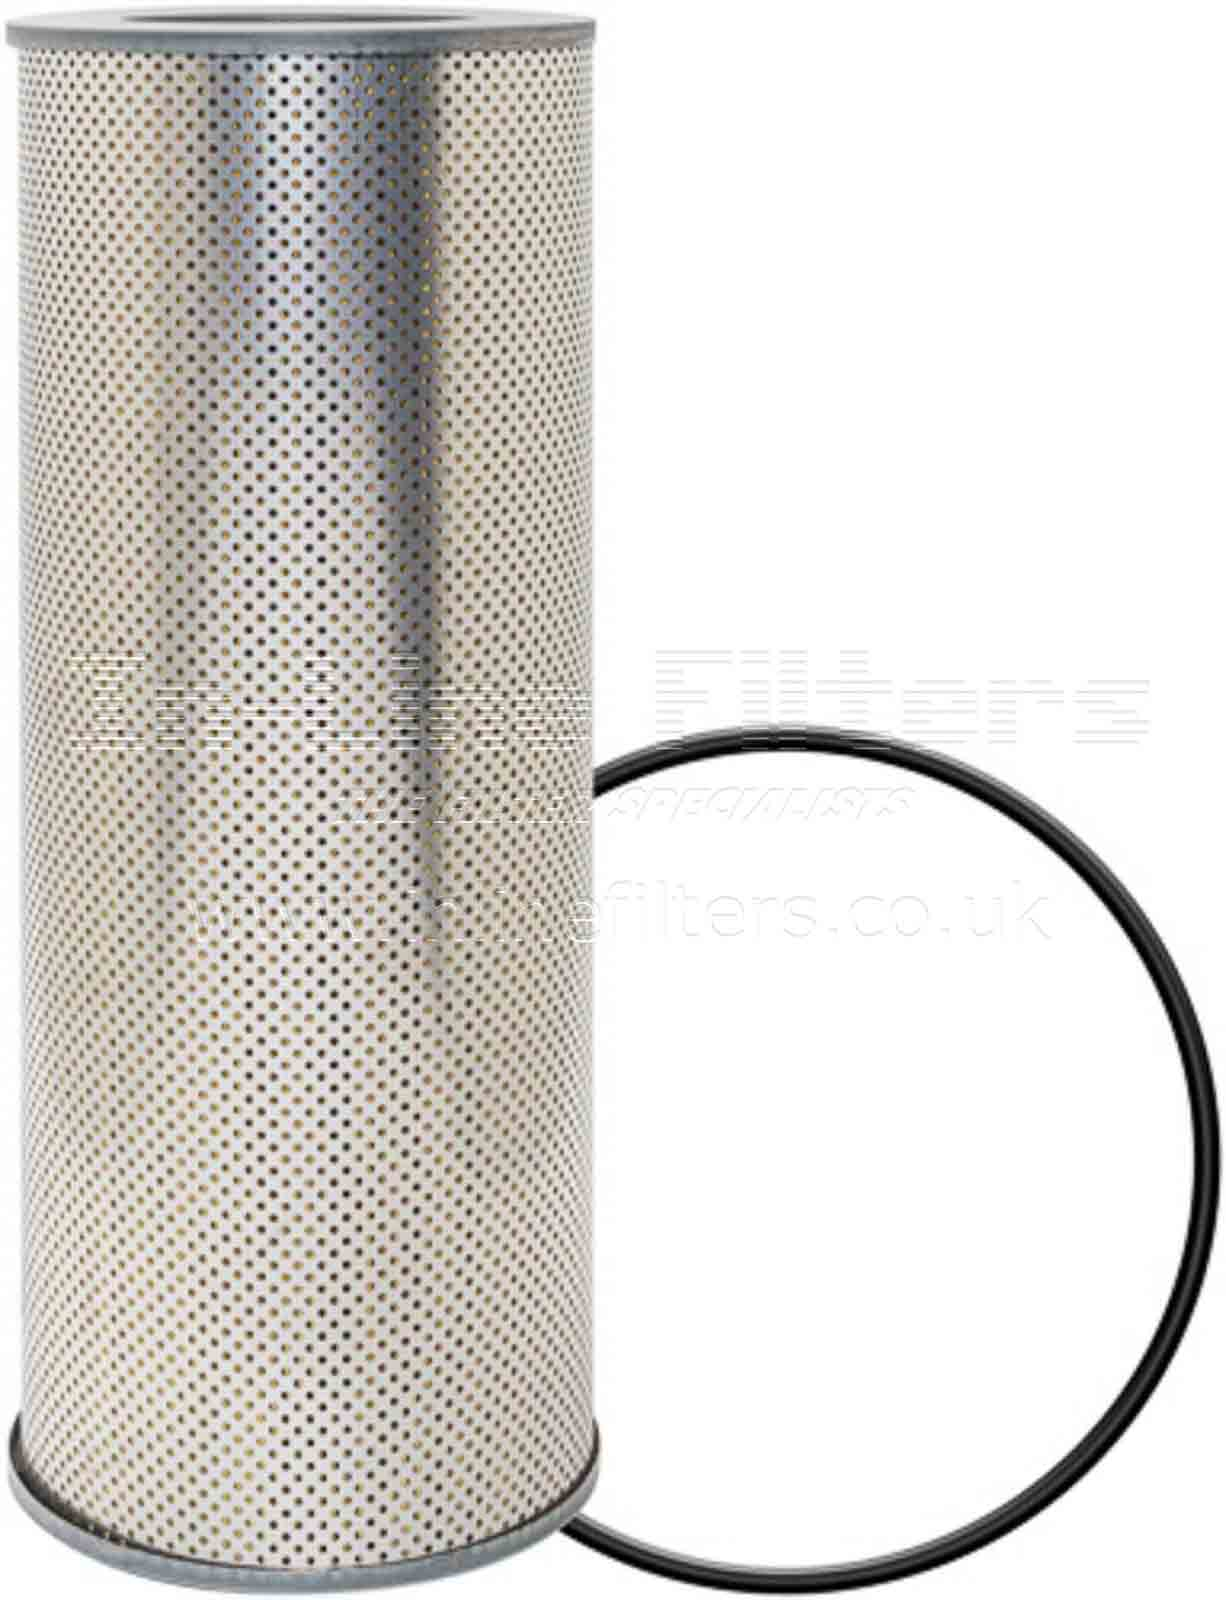 FBW-PT8492 FILTER-Hydraulic(Brand Specific-Baldwin PT8492) - Click Image to Close